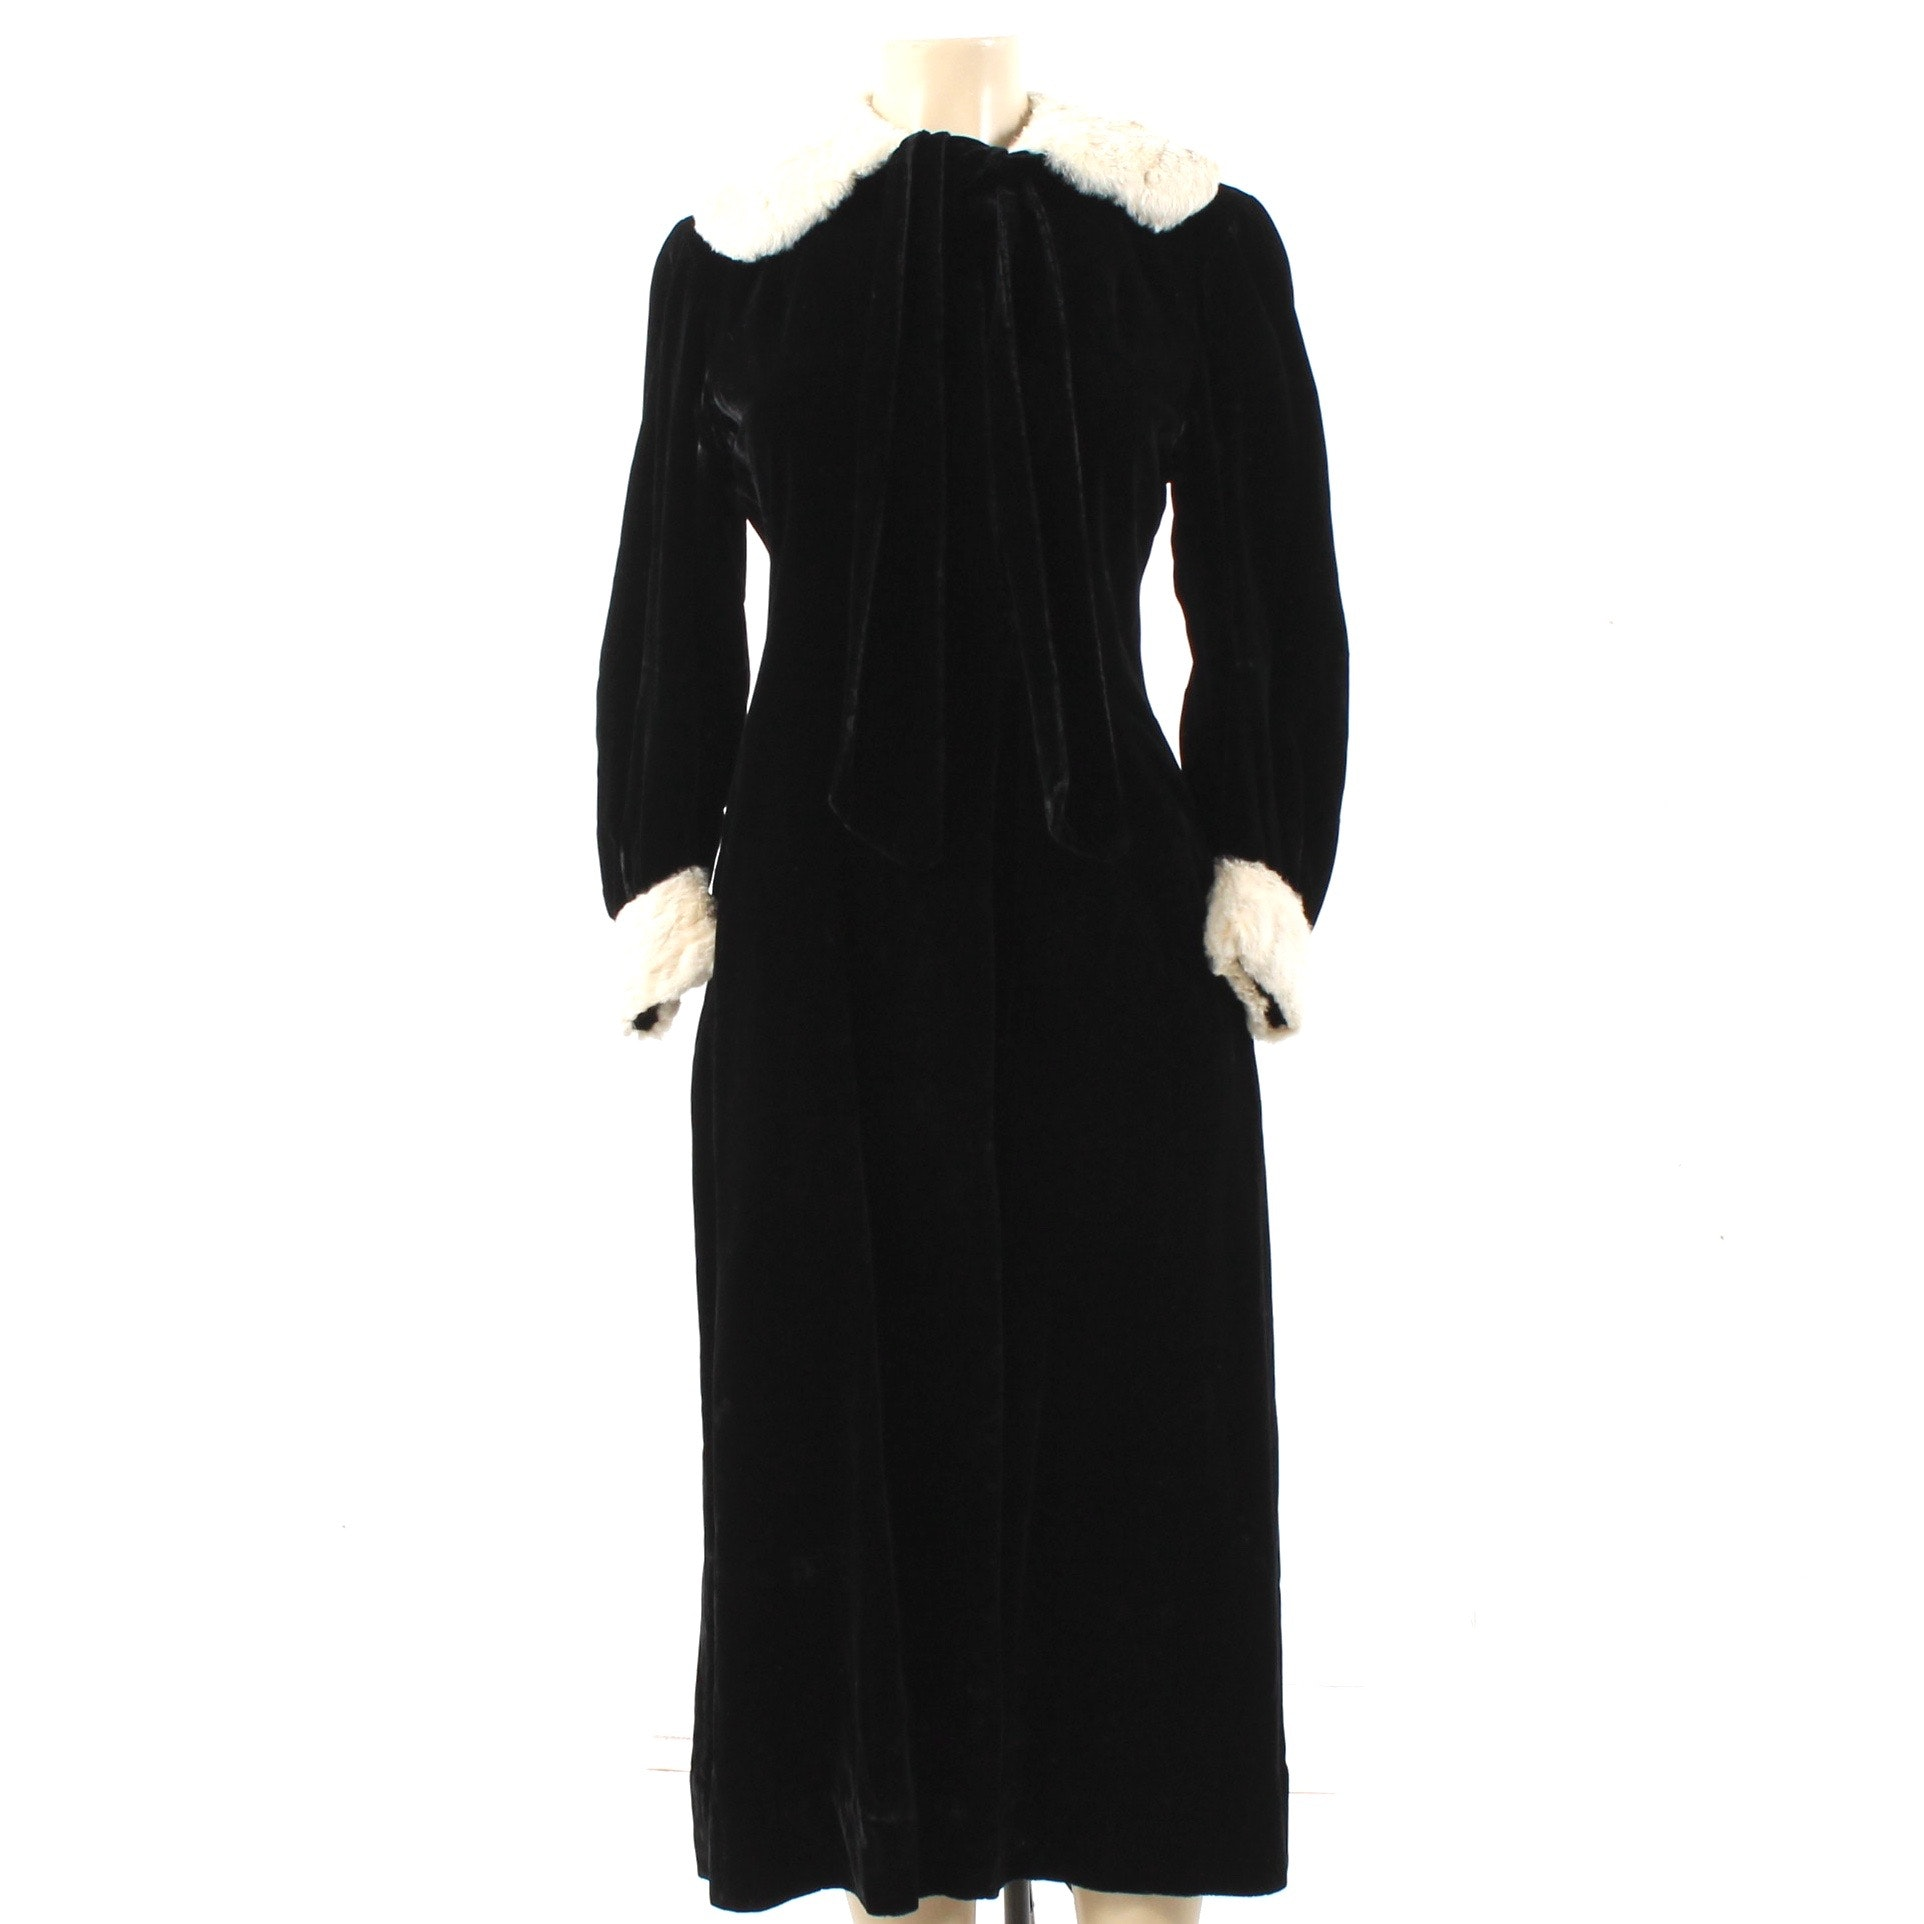 Circa 1935 Vintage Rabbit Fur Trimmed Black Velvet Coat